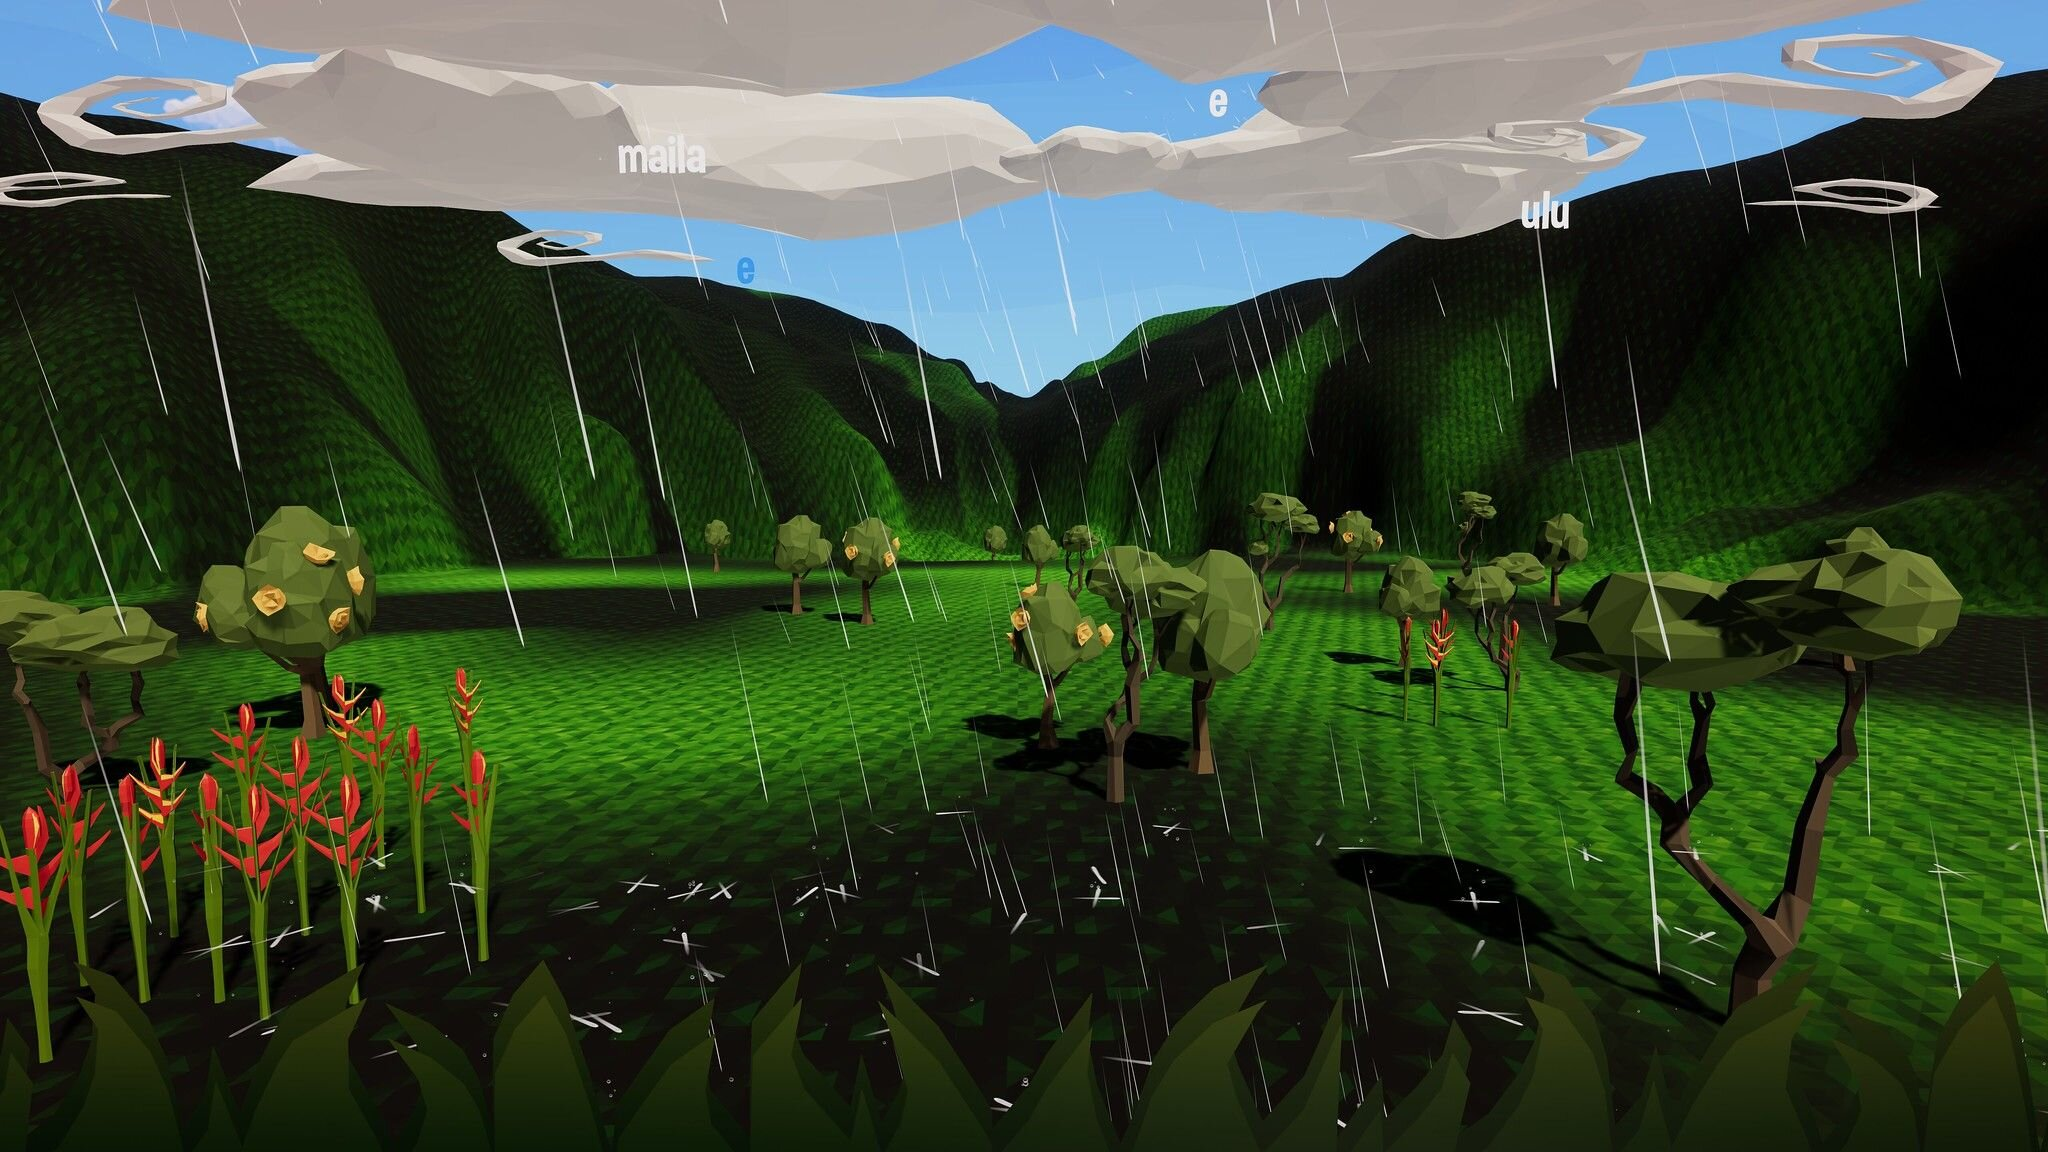 """Wao Kanaka - Ka Lei Milika'a Collectivehttp://skins.abtec.org/skins6.0/documentation/Wao Kanaka (""""the realm of humans"""") is a Hawaiian-language, first-person, exploration and puzzle game featuring Kānaka Maoli (Hawaiian) characters and traditions. The player explores different Hawaiian ecosystems to understand and uphold the concept of aloha 'aina (""""love of the land"""")."""